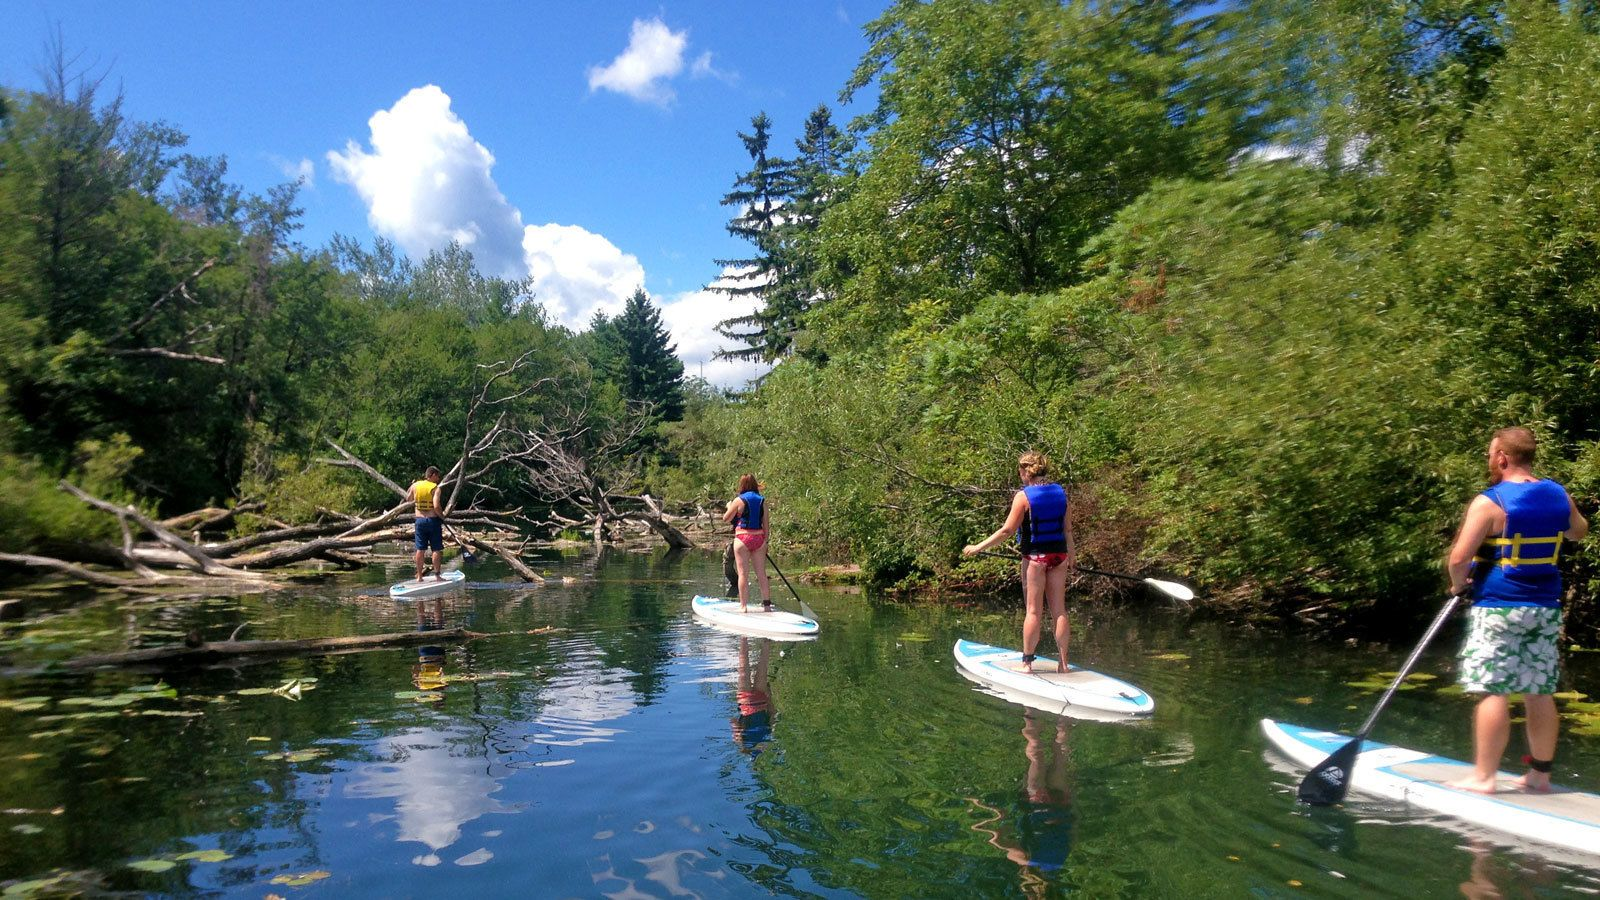 paddleboarders navigating through fallen trees in the water in Toronto